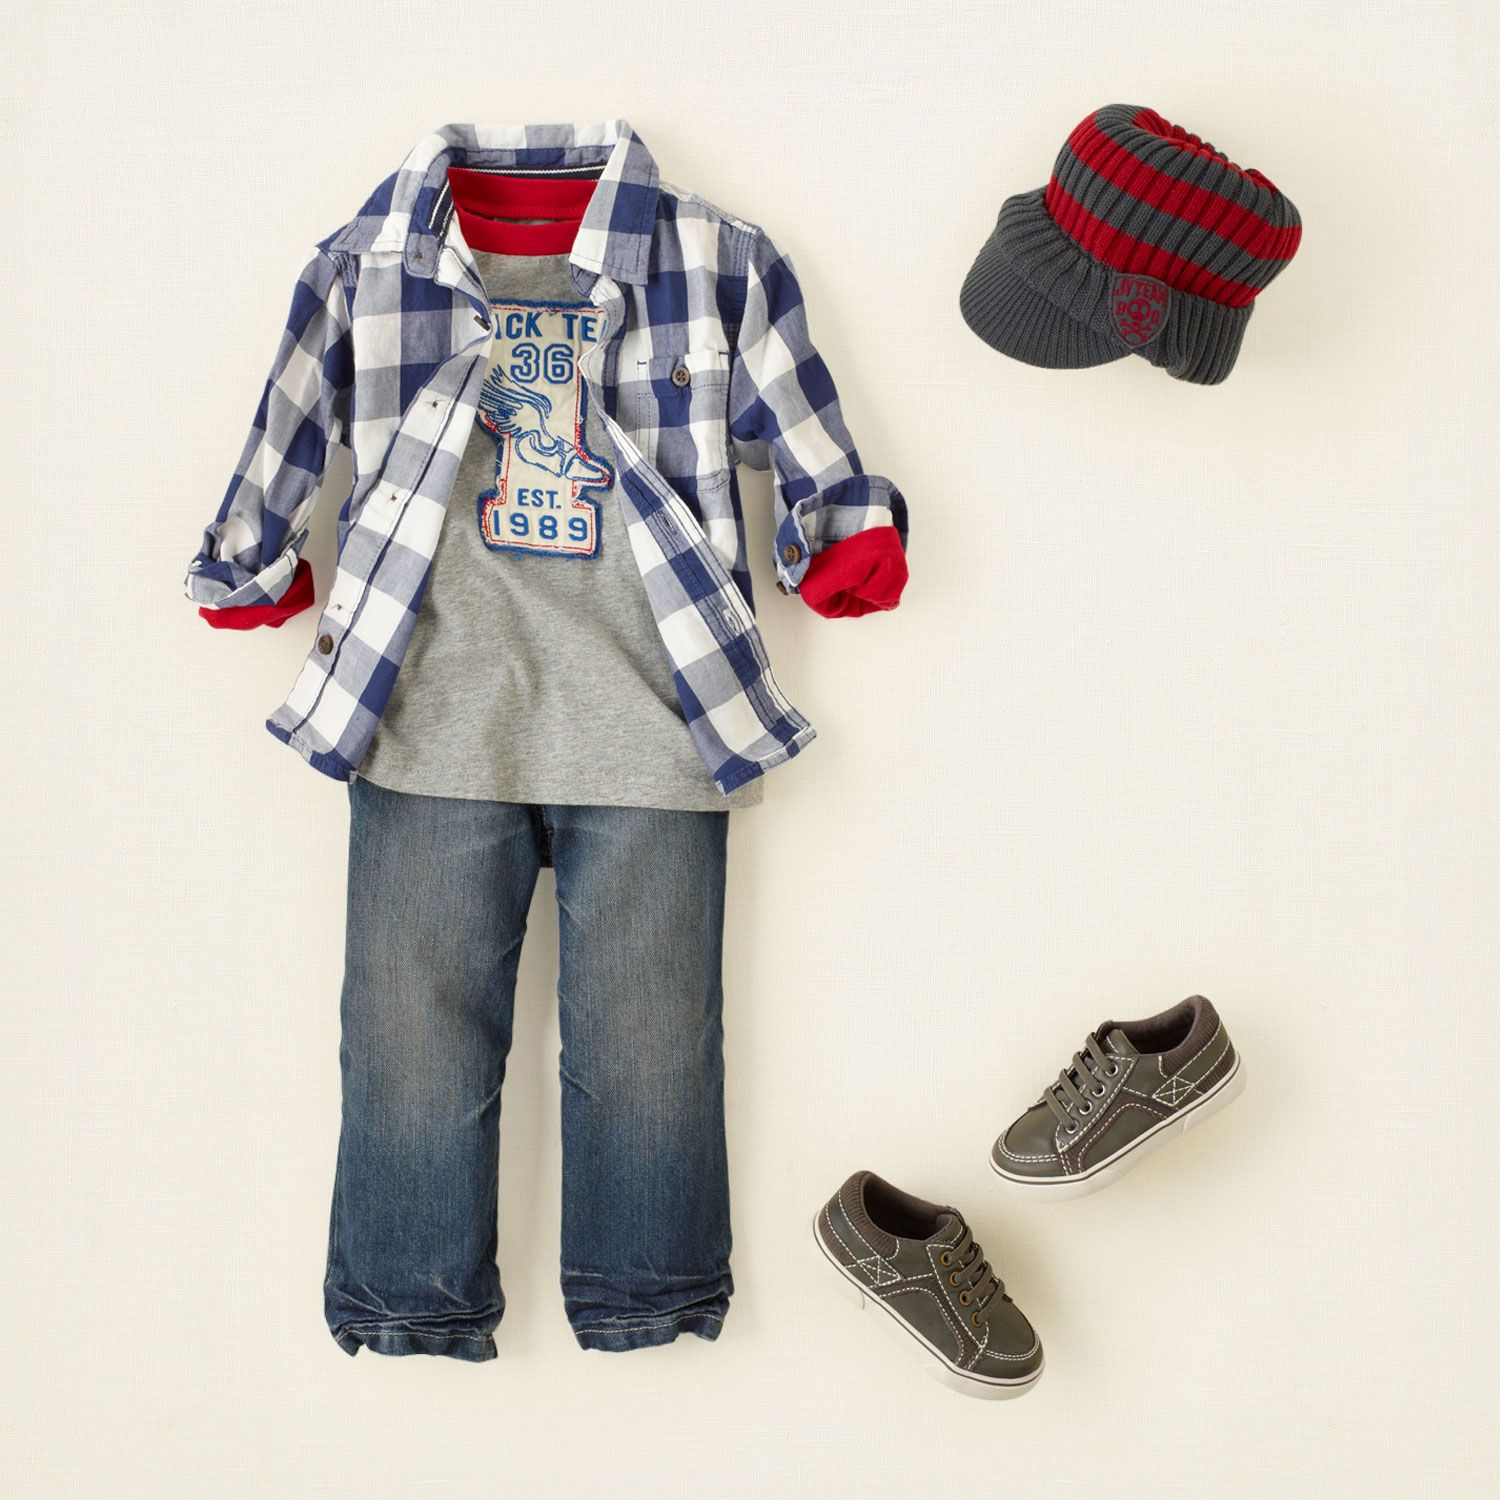 Cute outfits for kids